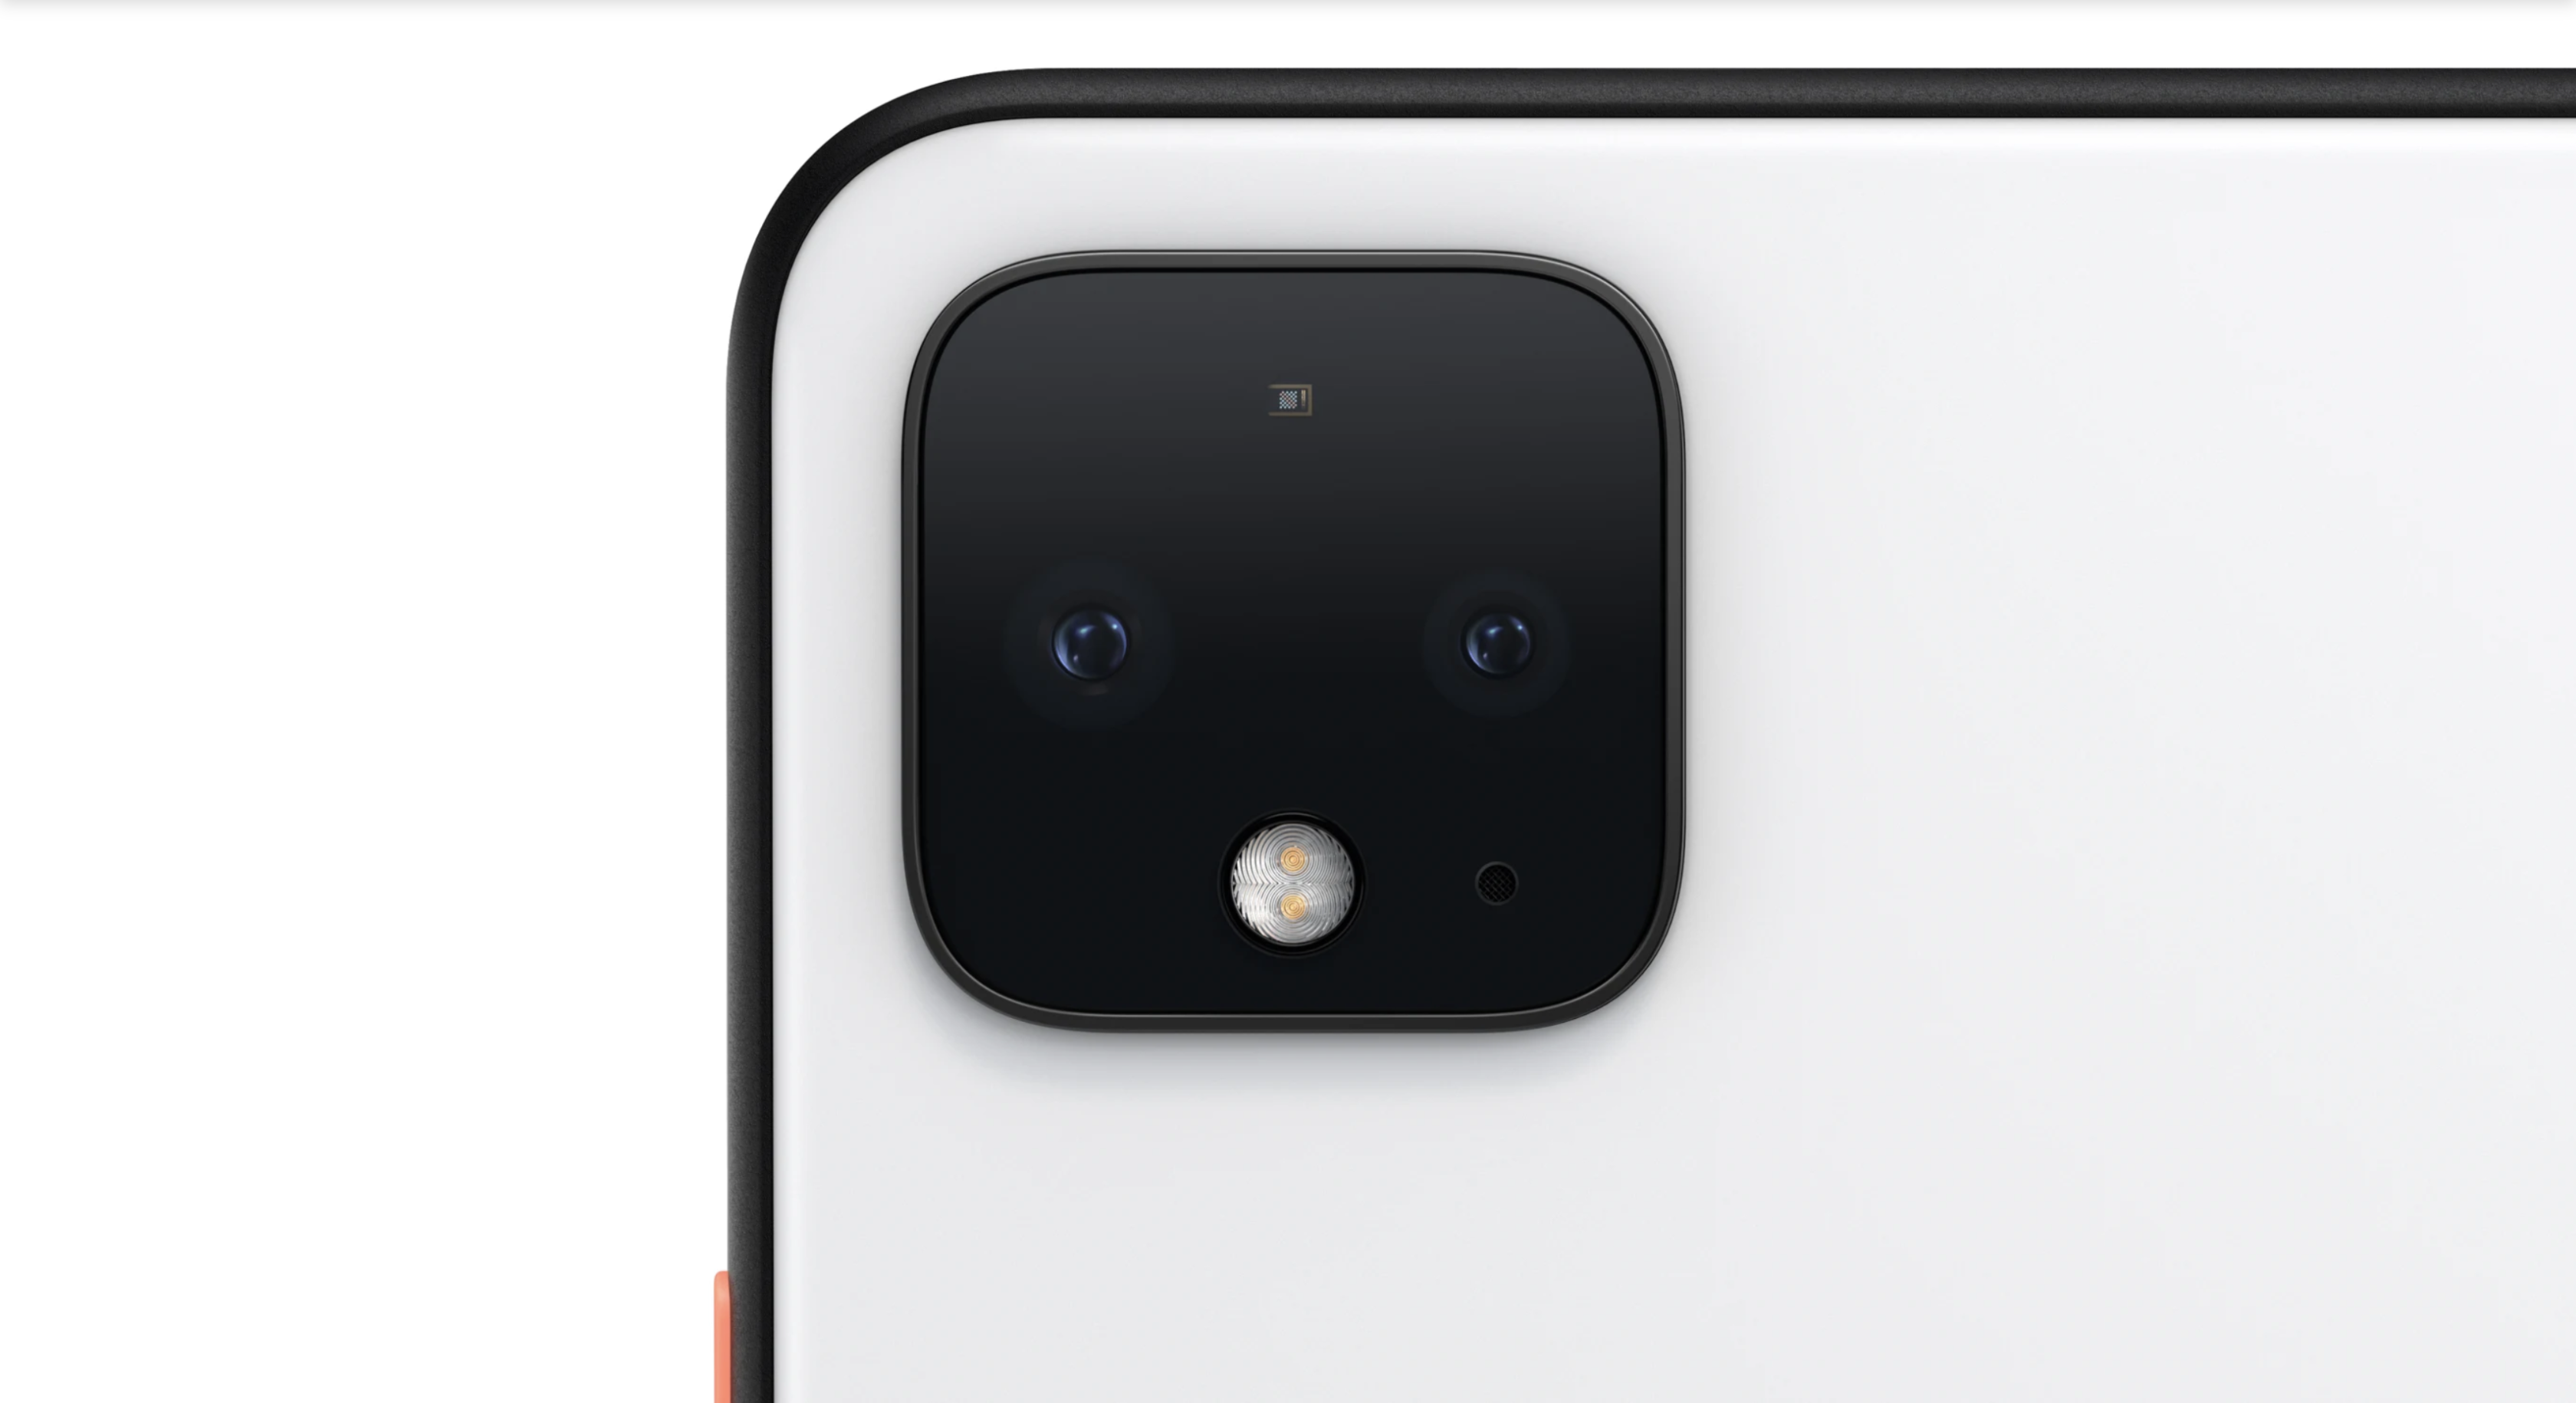 Image from Google showing the square camera module on the back of a white Pixel 4 phone.